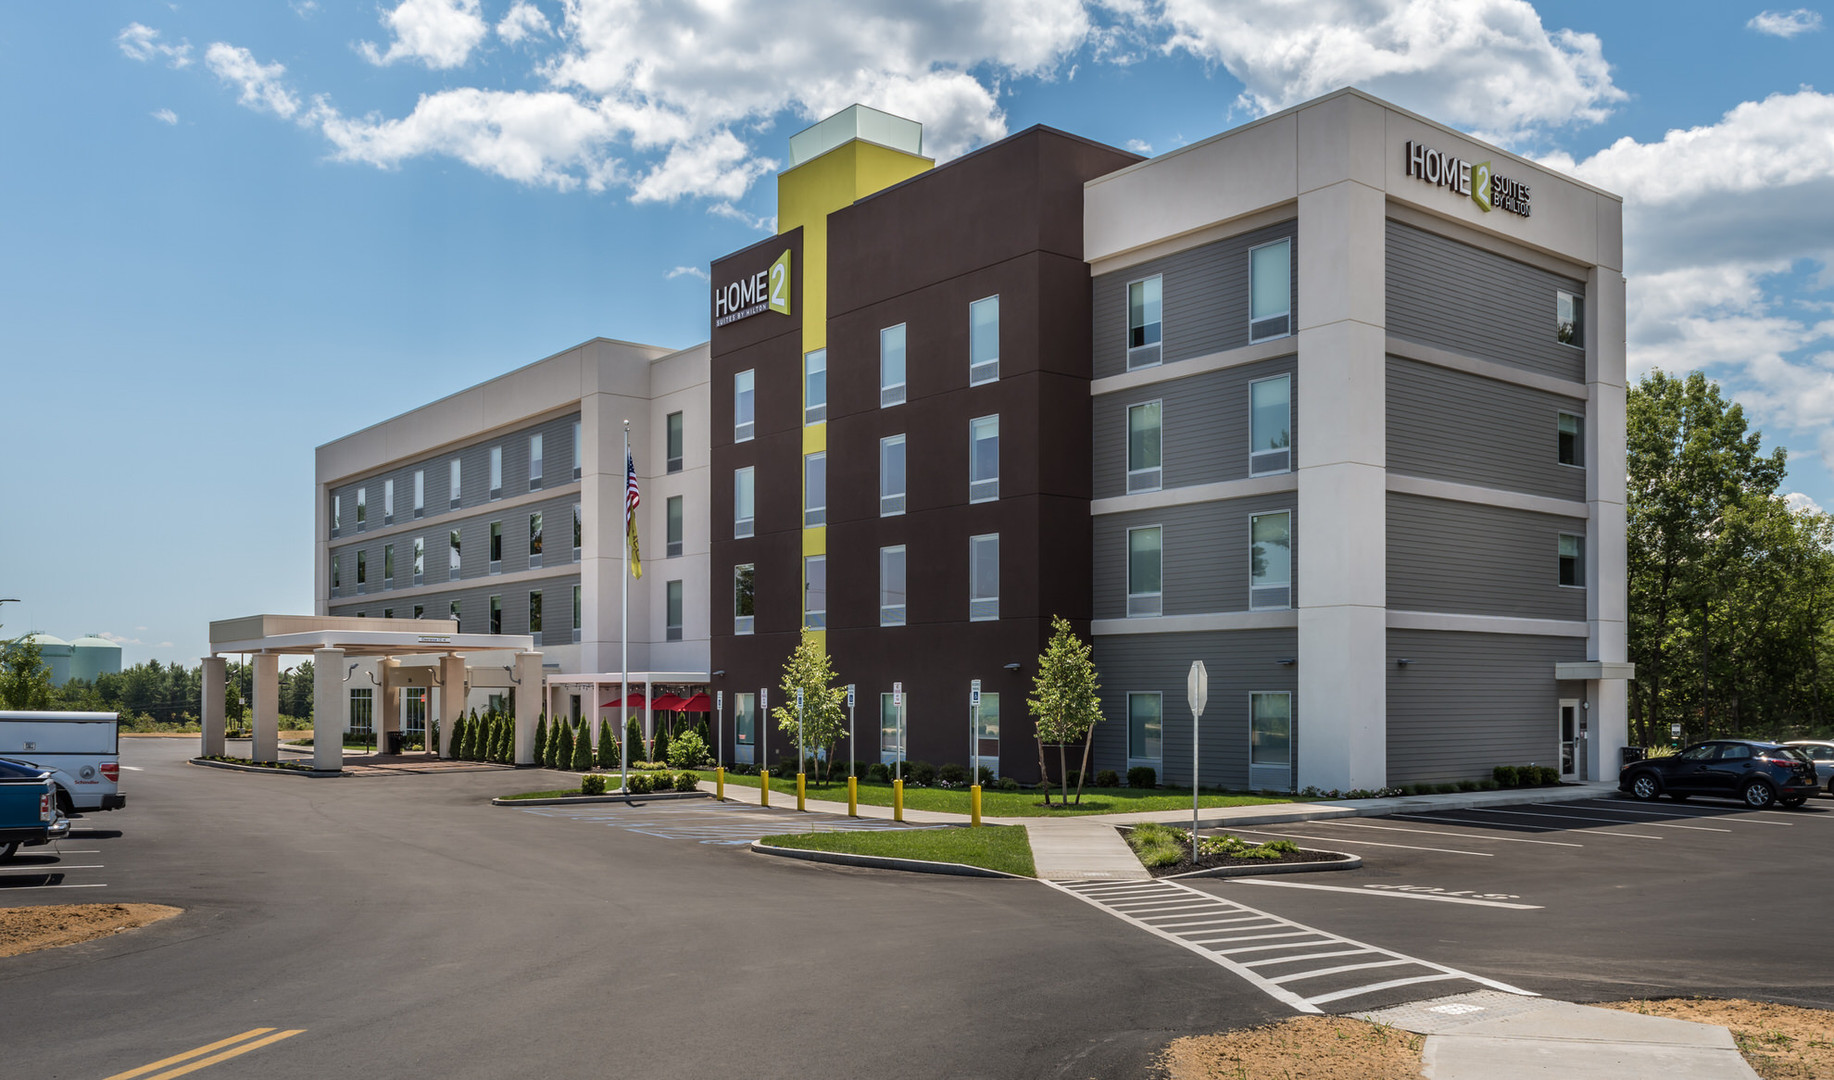 Home2 Suites Queensbury Glens Falls